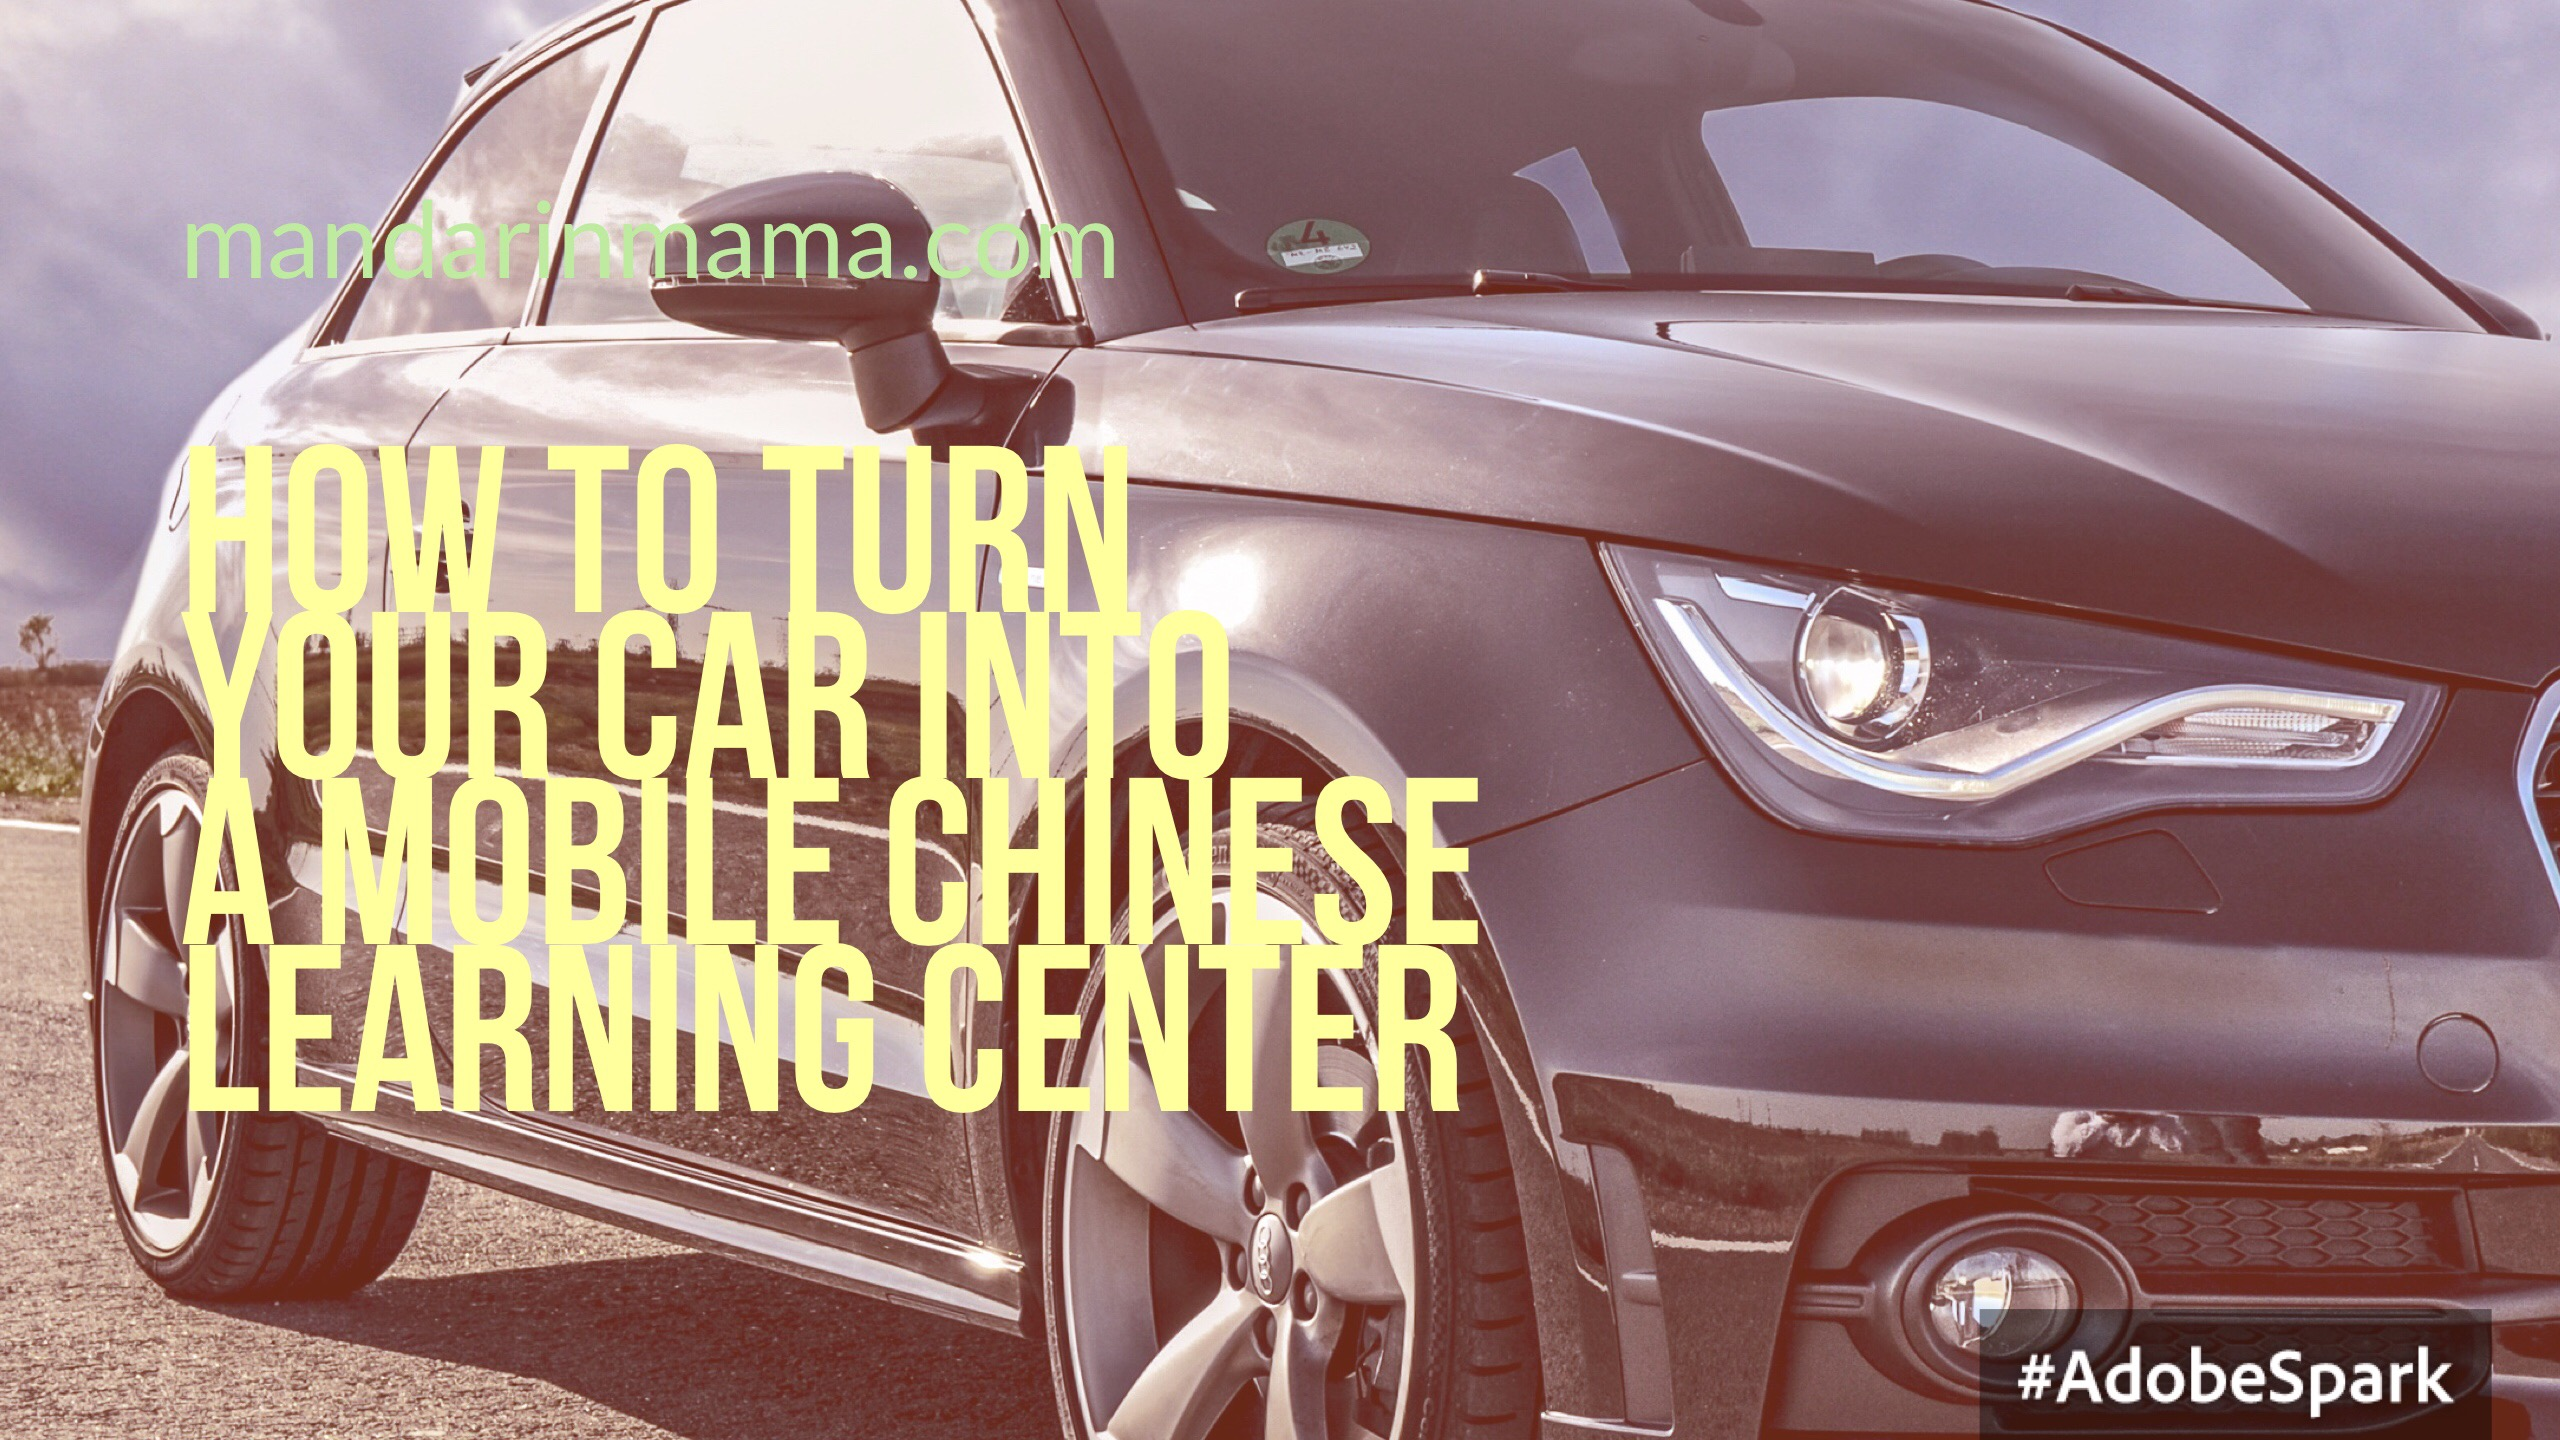 How to Turn Your Car into a Mobile Chinese Learning Center